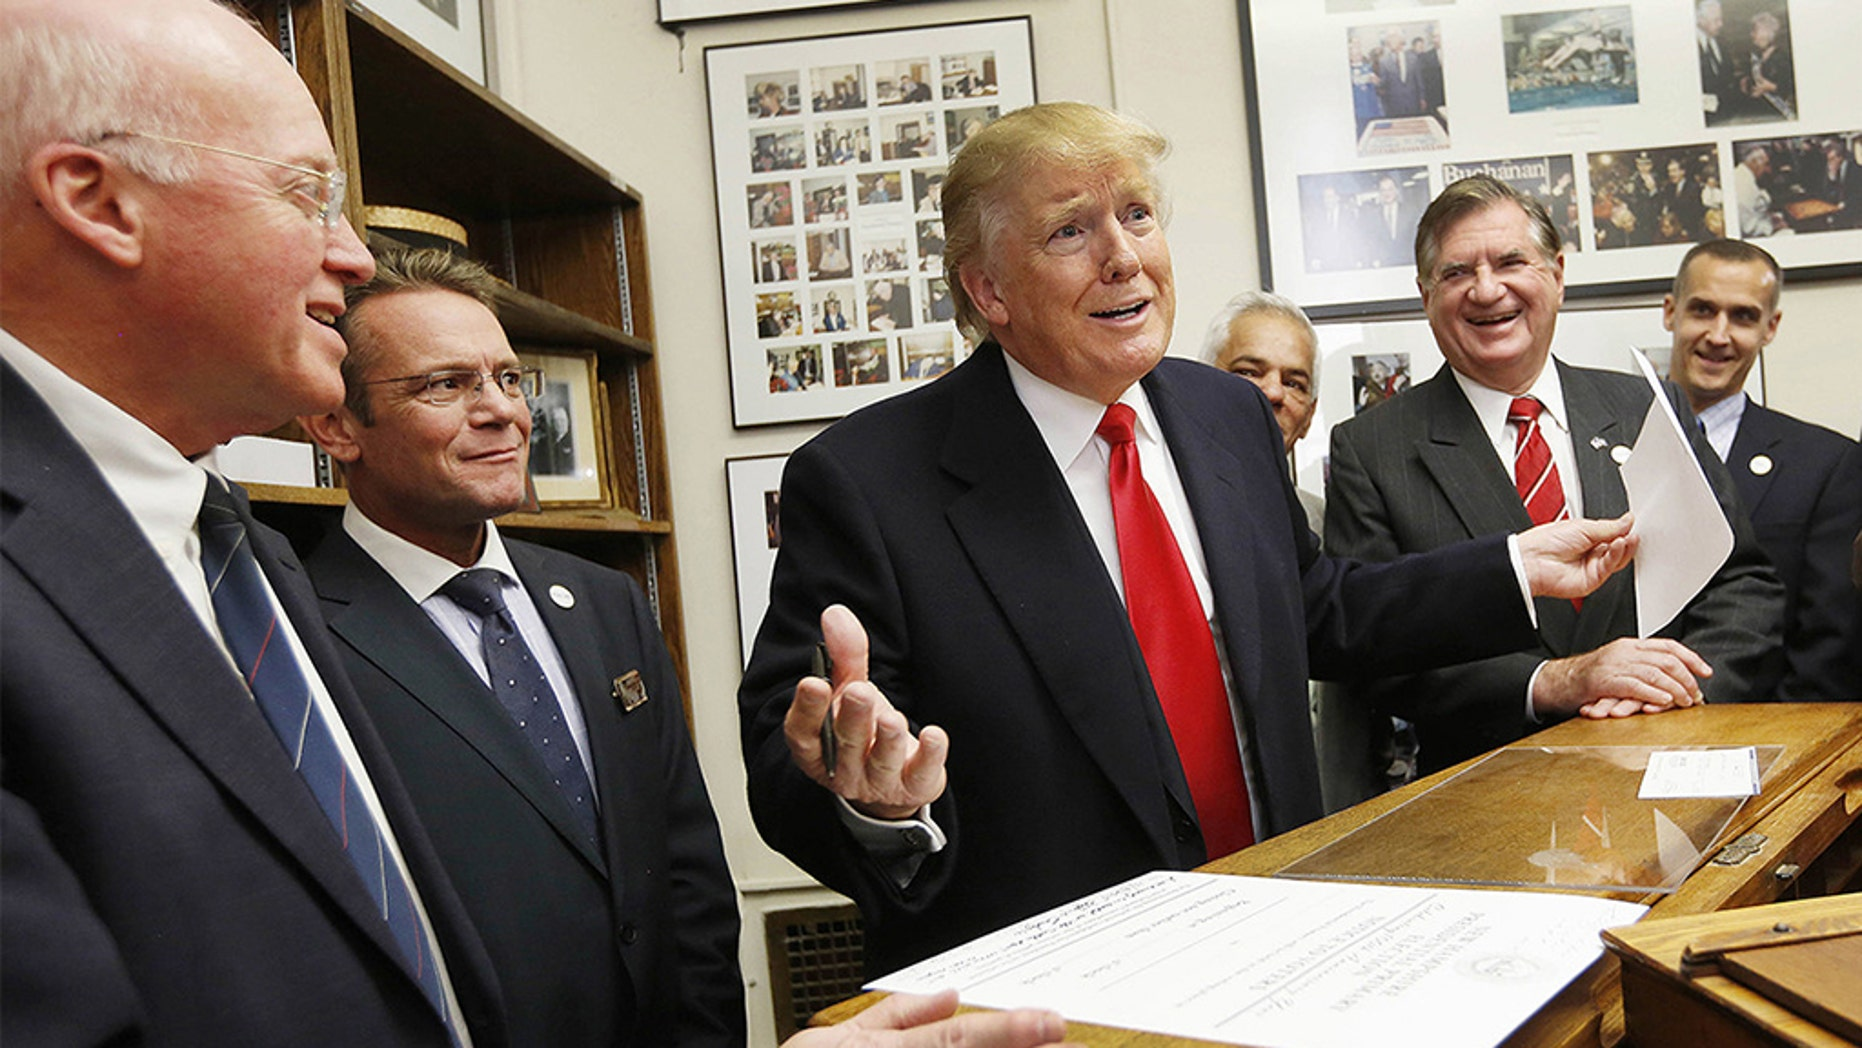 In this Nov. 4, 2015, file photo, New Hampshire Secretary of State Bill Gardner, left, watches as then-Republican presidential candidate Donald Trump fills out his filing papers to be on the primary ballot at the Secretary of State's office in Concord, N.H. (AP Photo/Jim Cole, File)